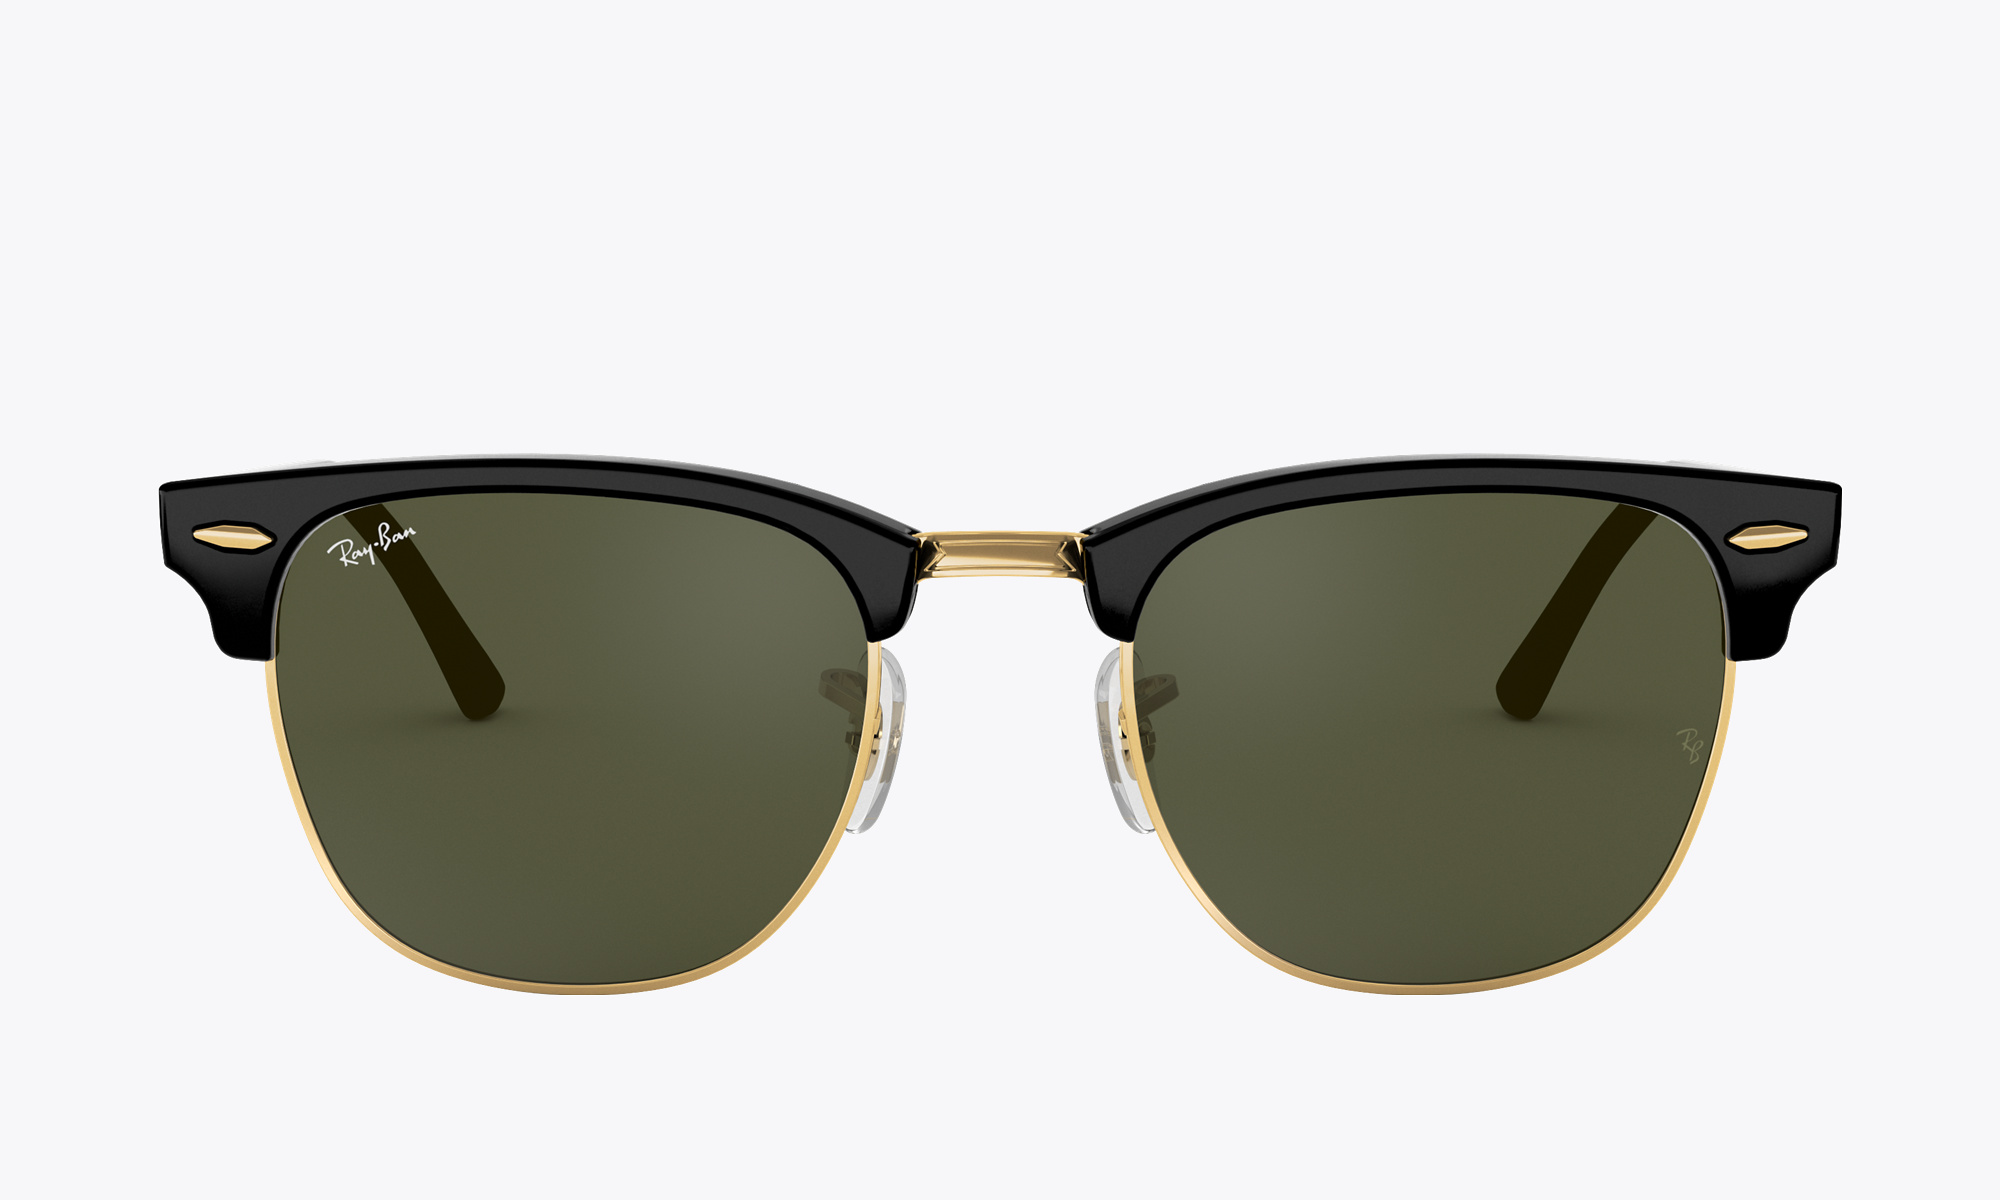 Image of Ray-Ban CLUBMASTER CLASSIC color Black